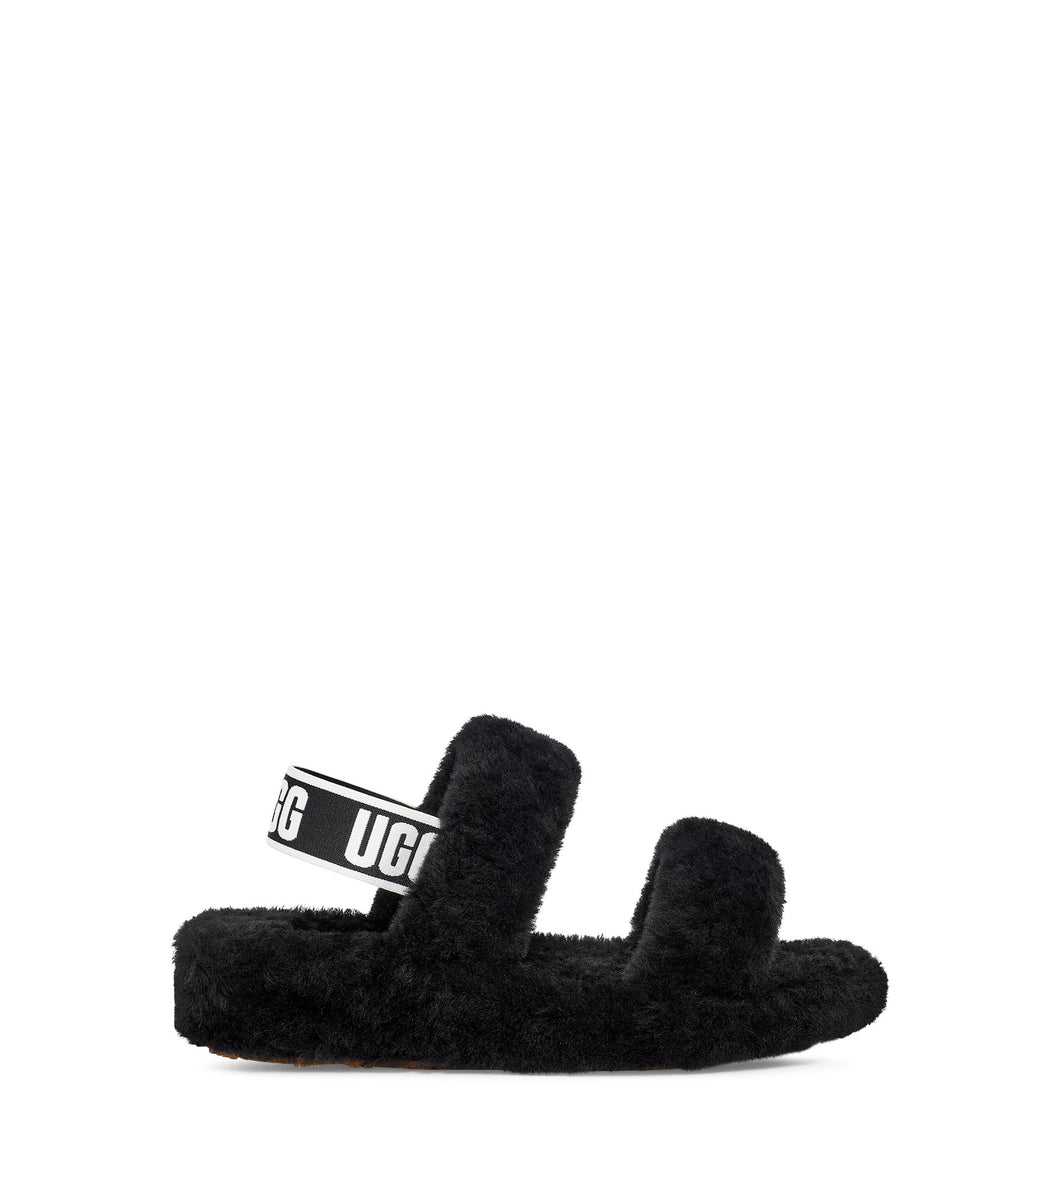 UGG OH YEAH Womens Slides